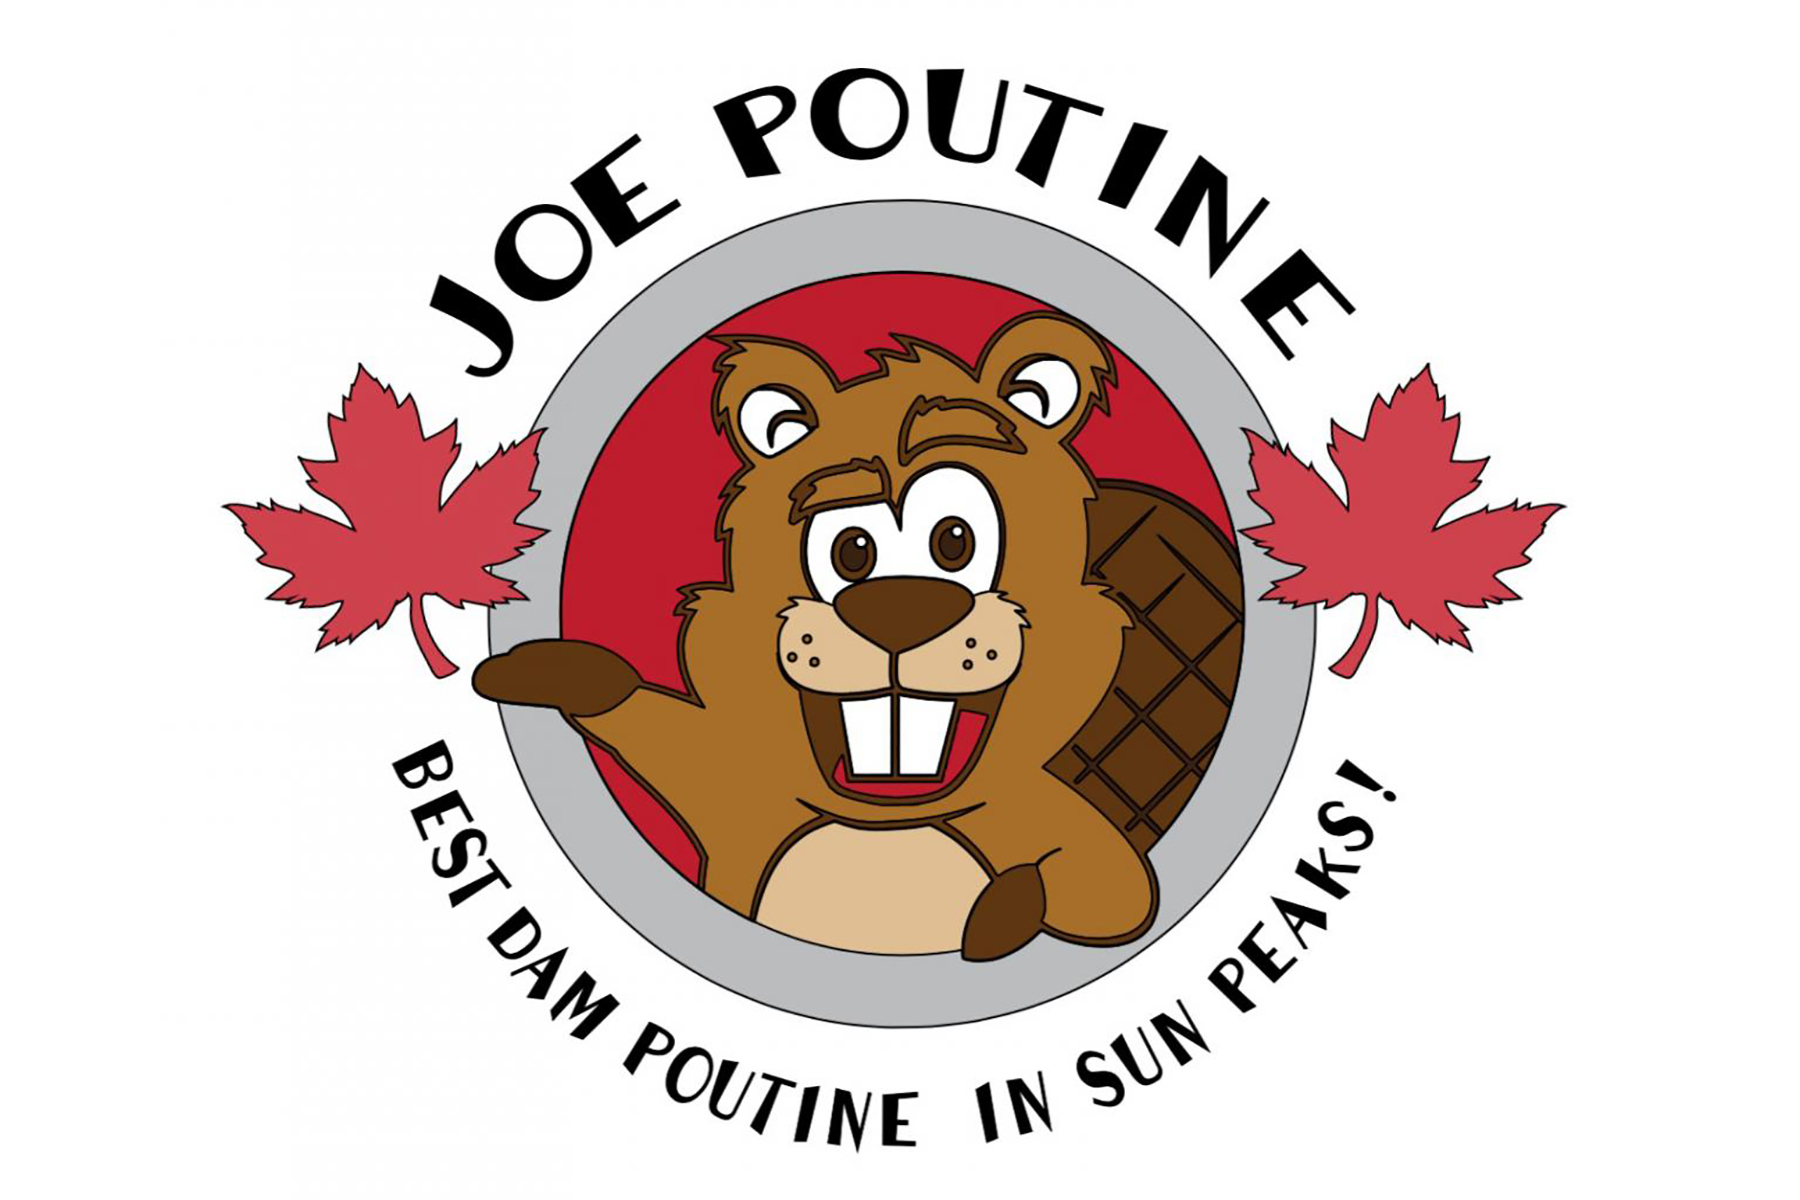 Joe Poutine logo